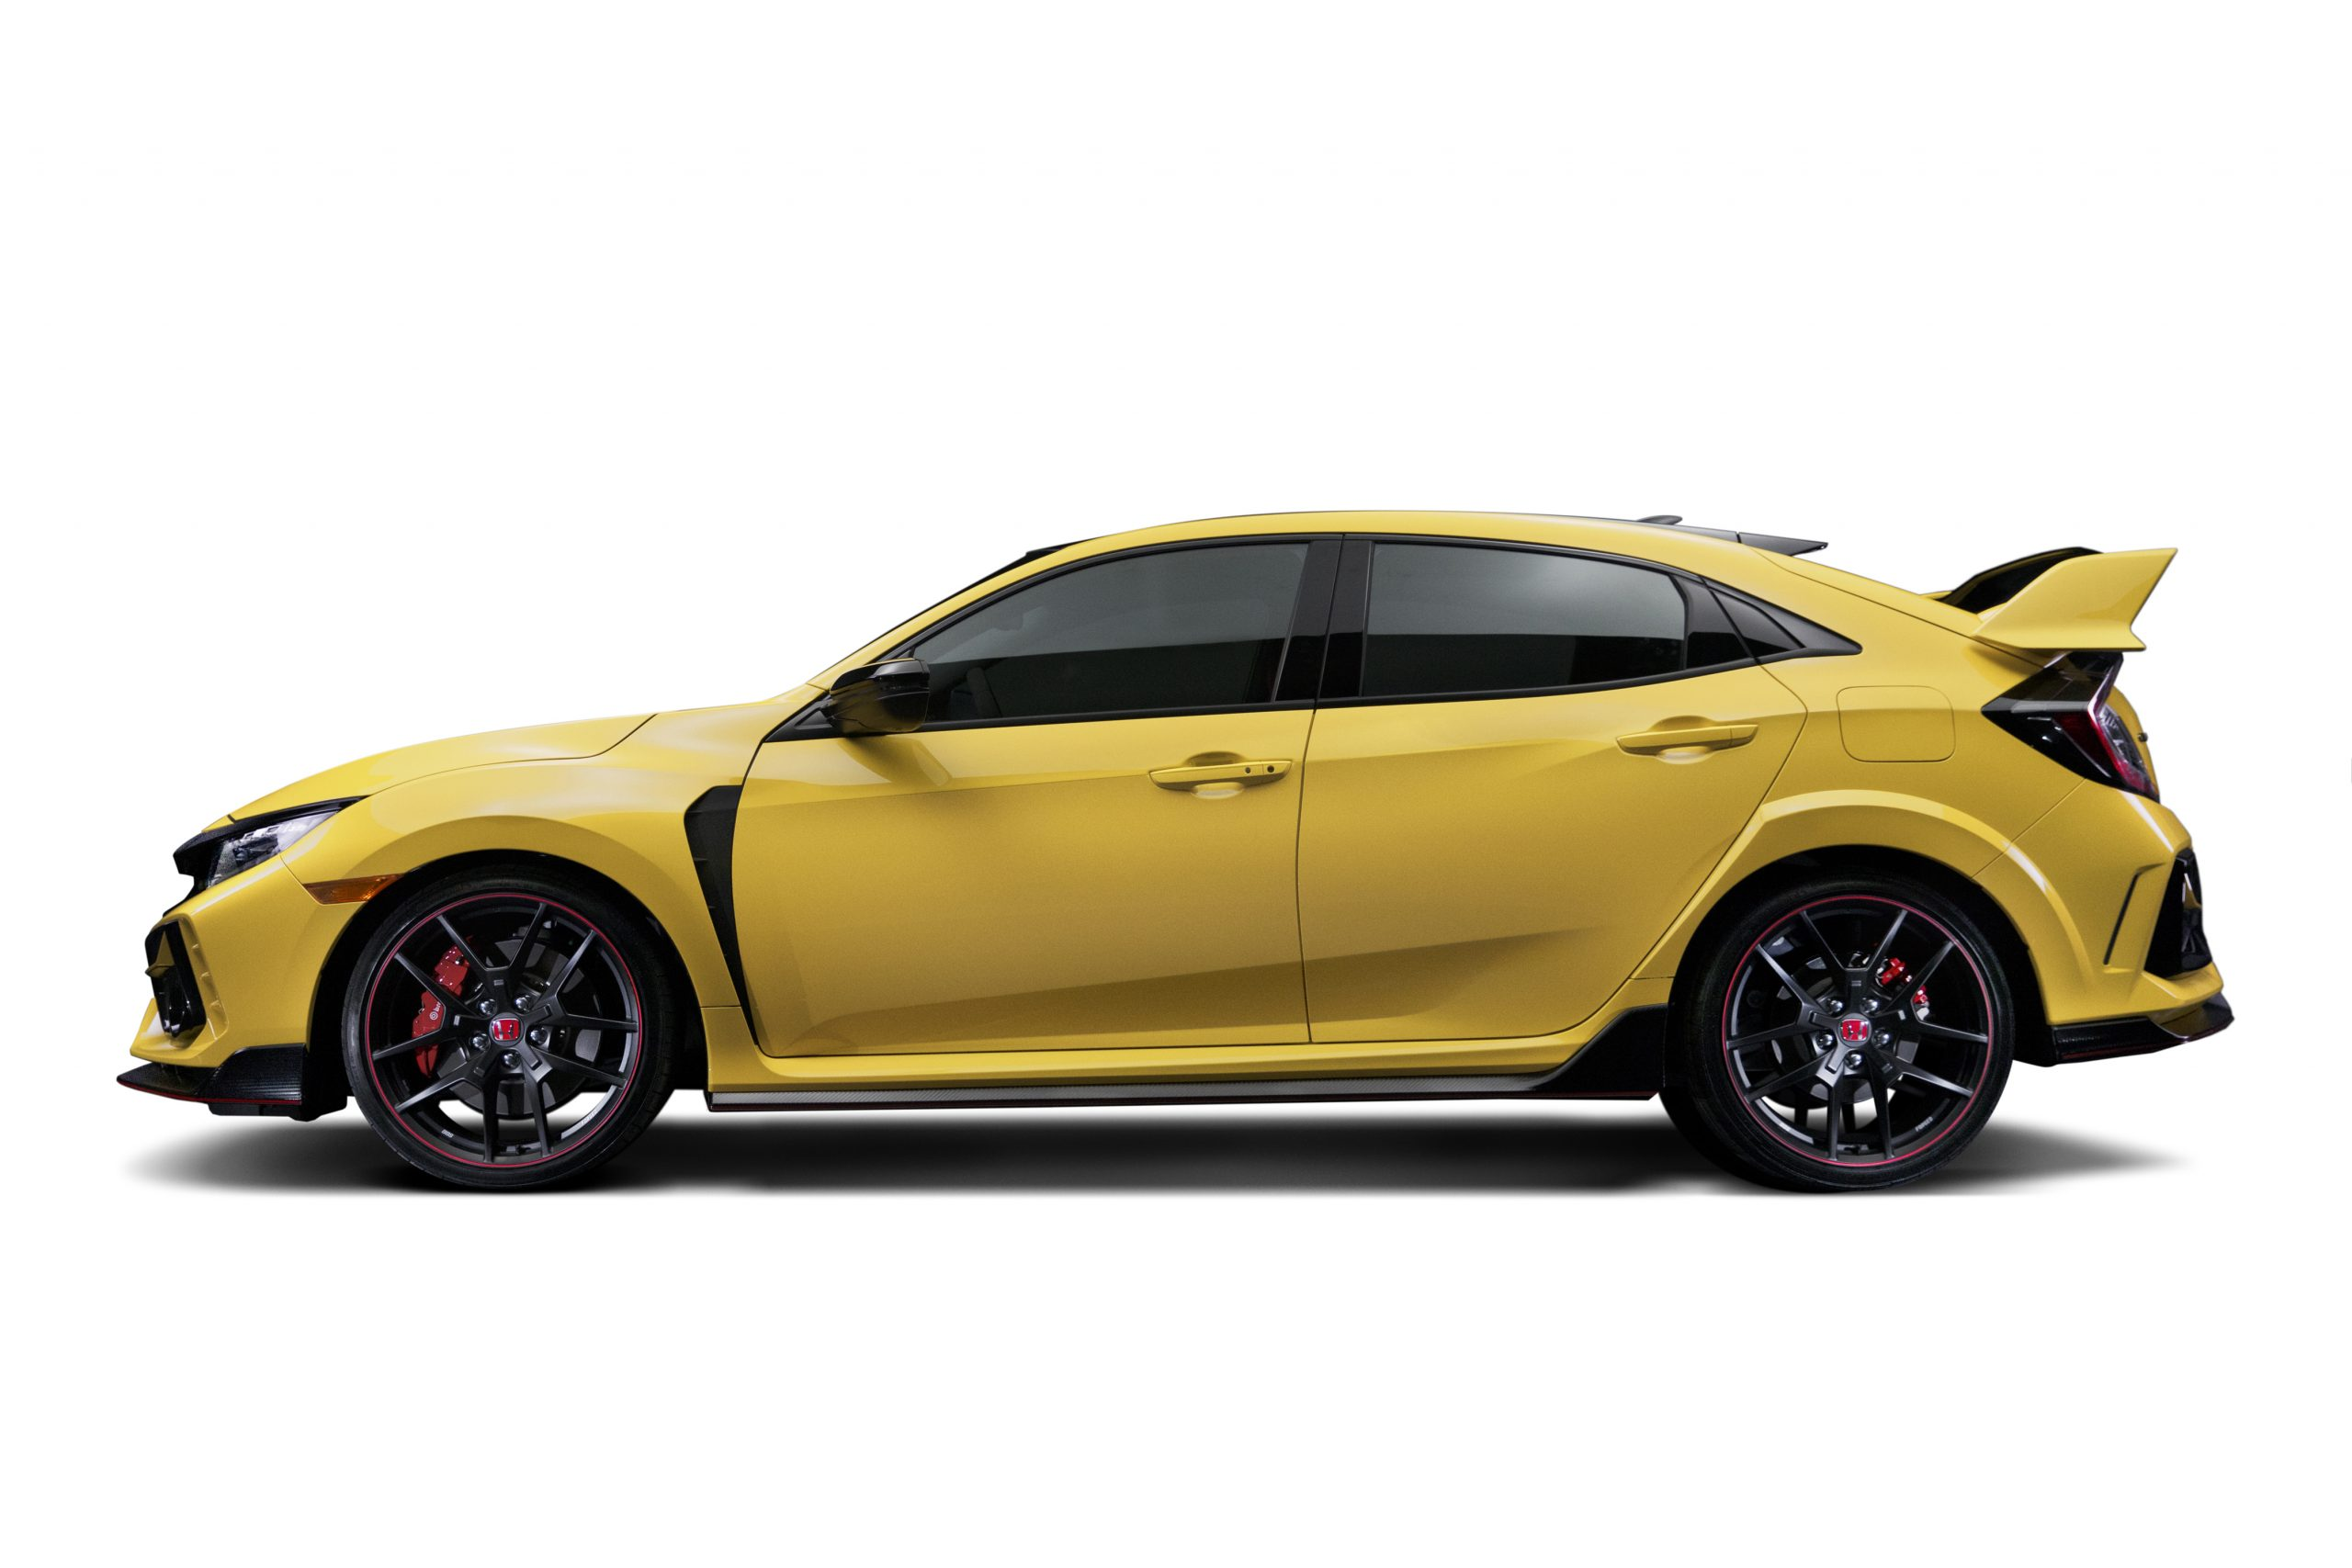 01 2021 Honda Civic Type R Limited Edition Scaled